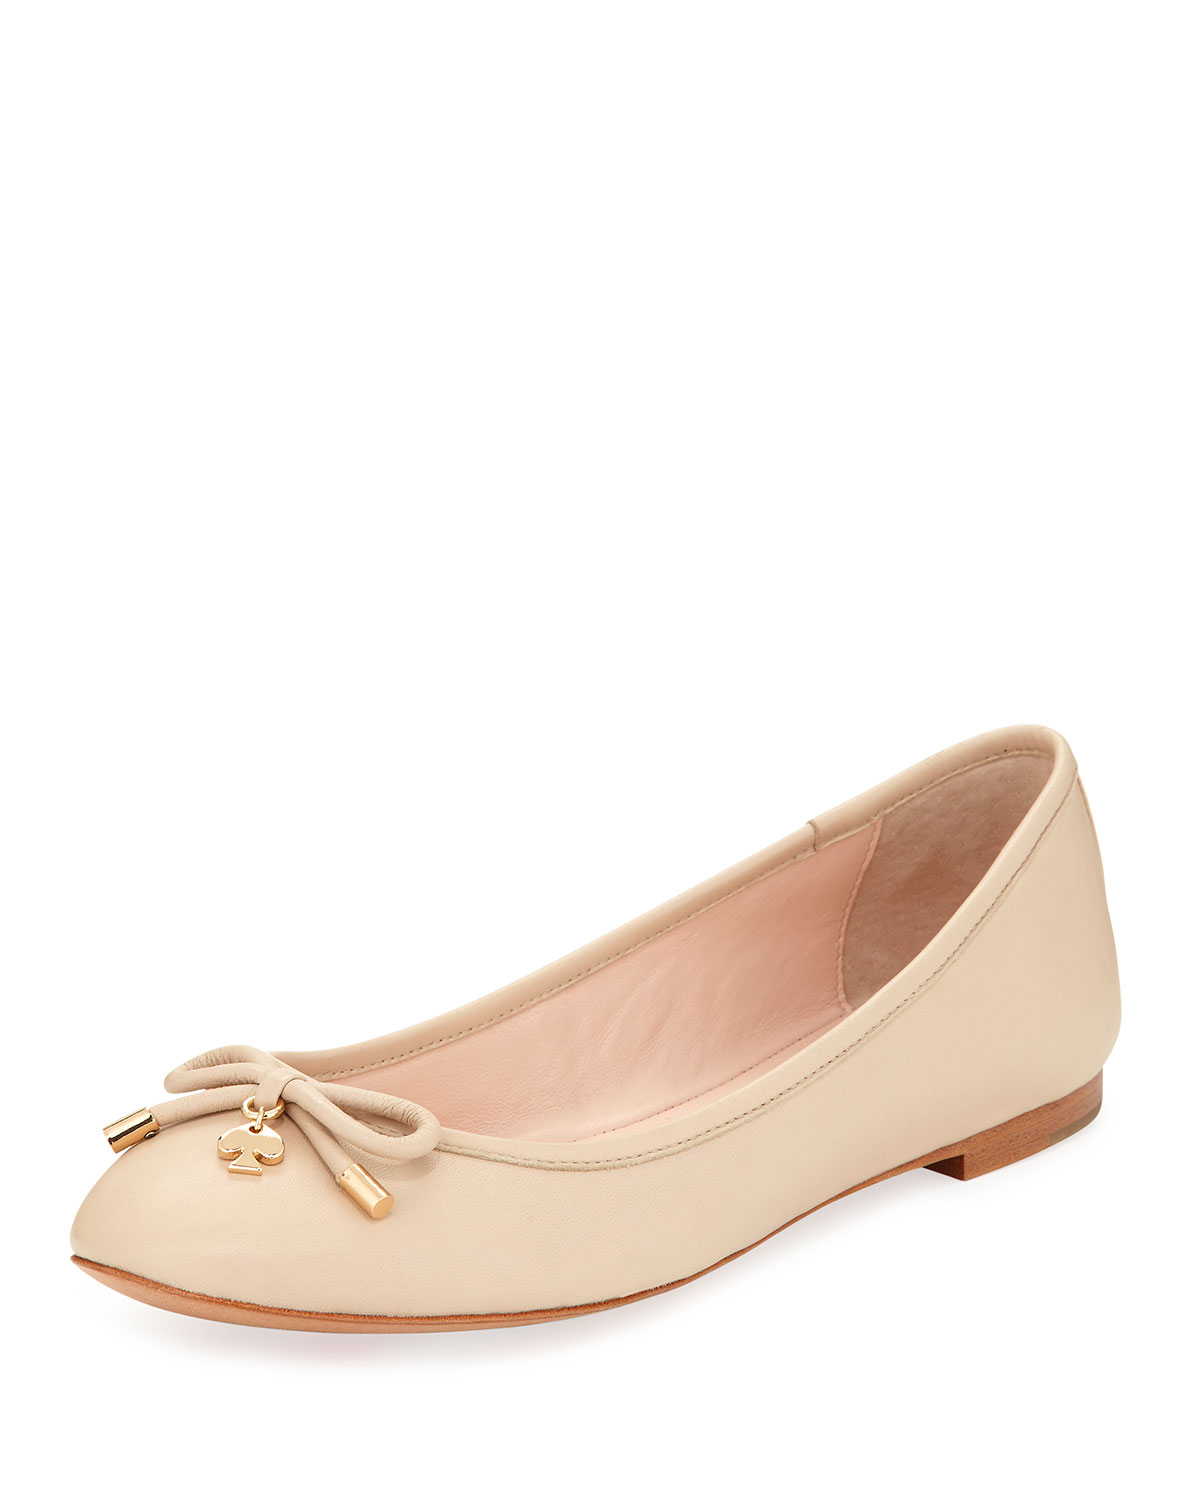 58748ffdced7 kate spade new york willa classic leather Ballet Flats